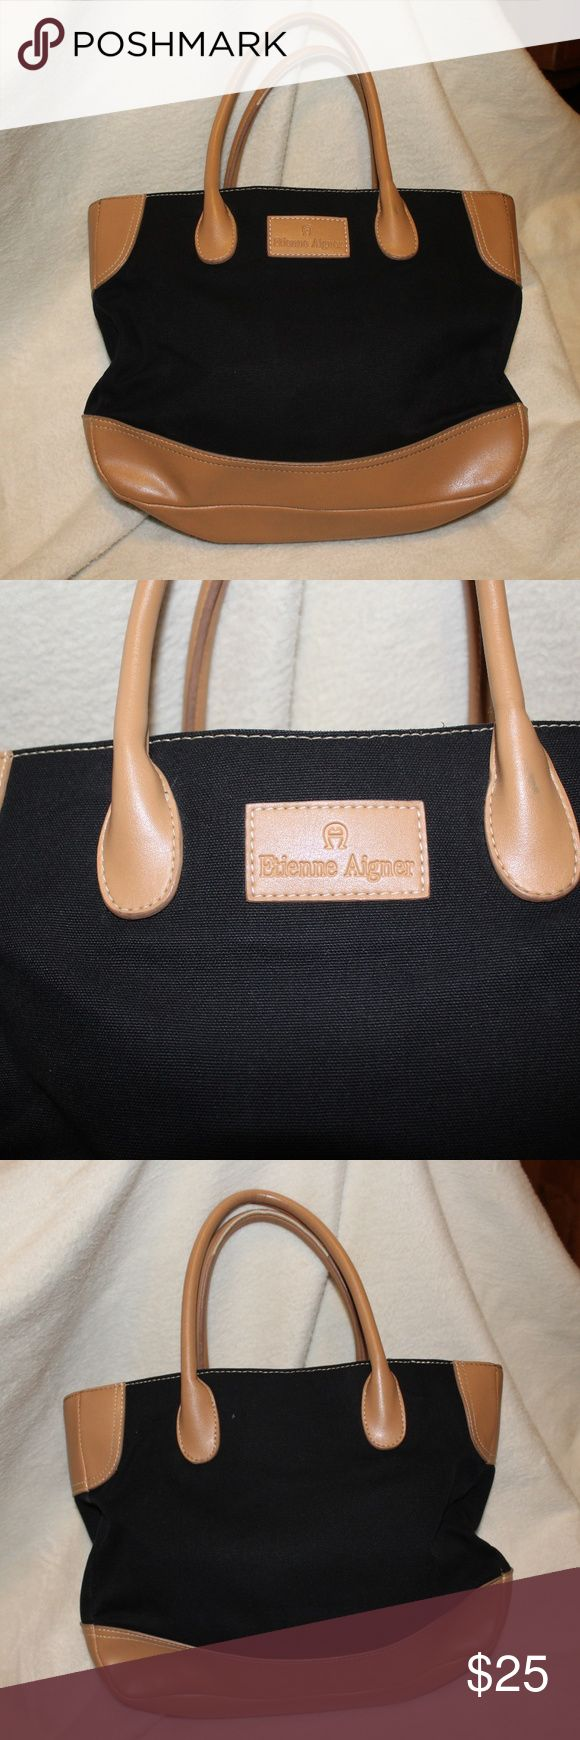 Etienne Aigner black and brown purse Measurements are approximate Width: 3 inches Length: 12 inches  Height:  10 inches  Offers always welcome Etienne Aigner Bags